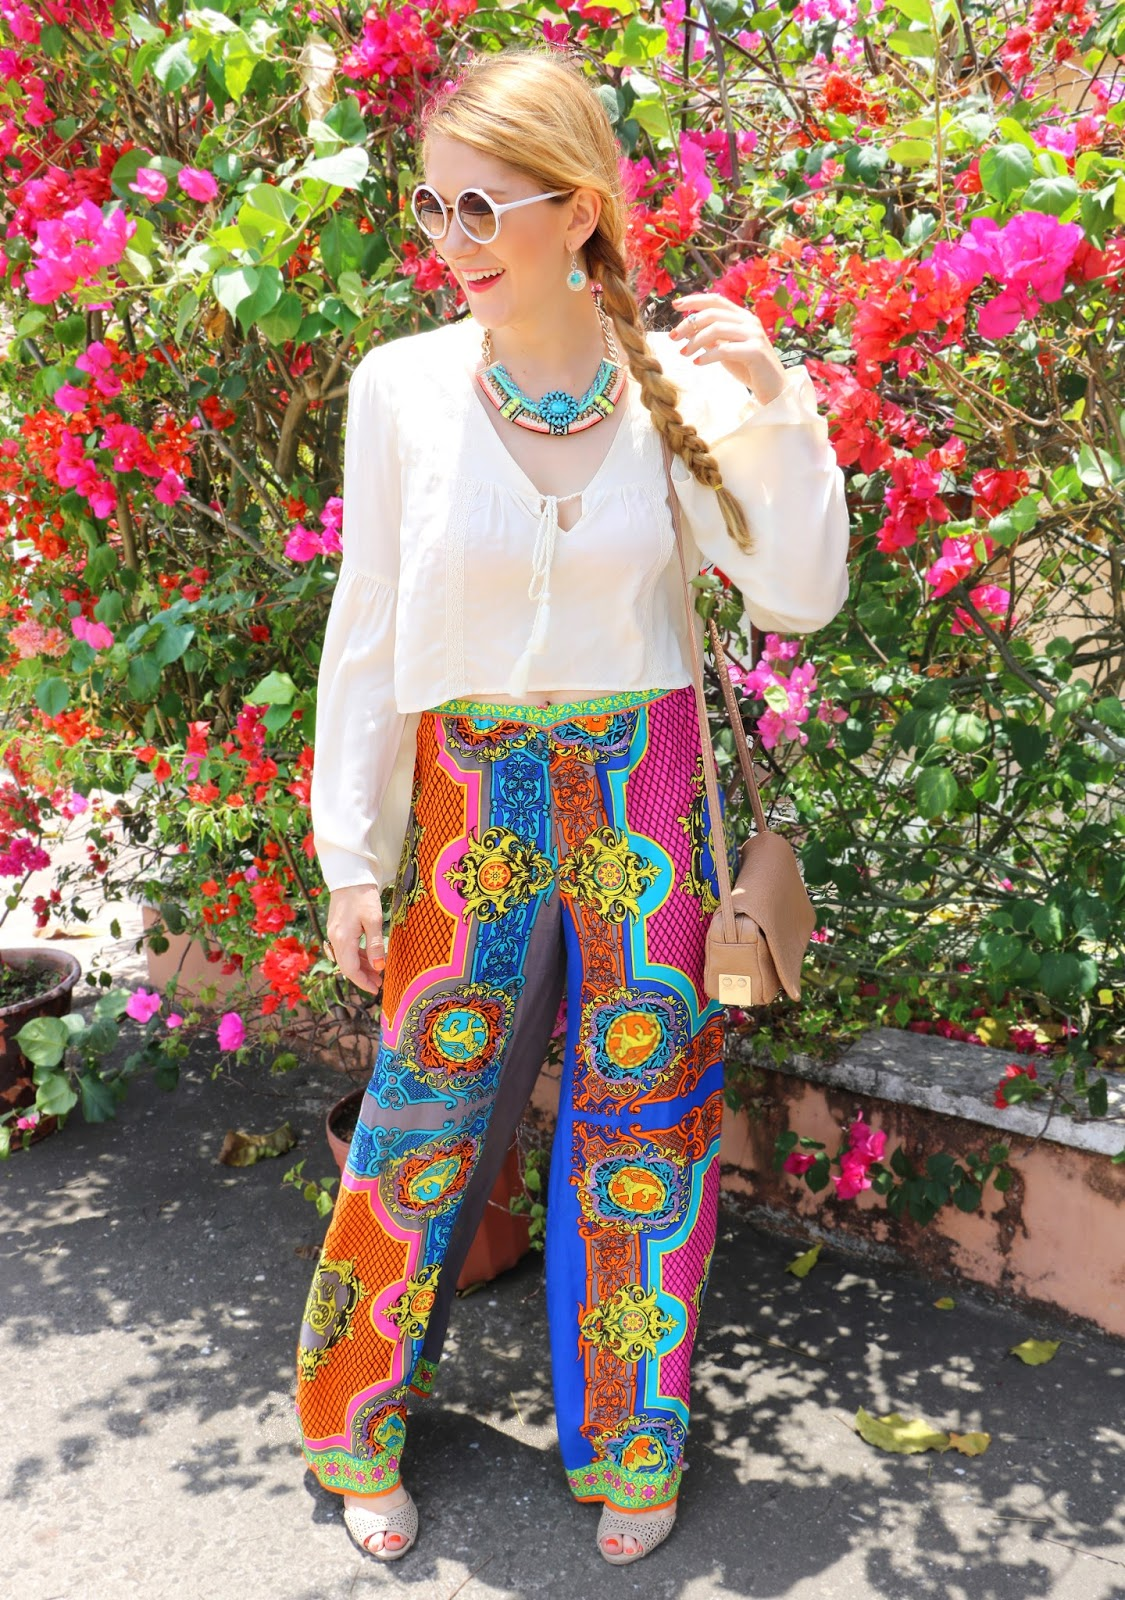 Colorful Summer Fashion